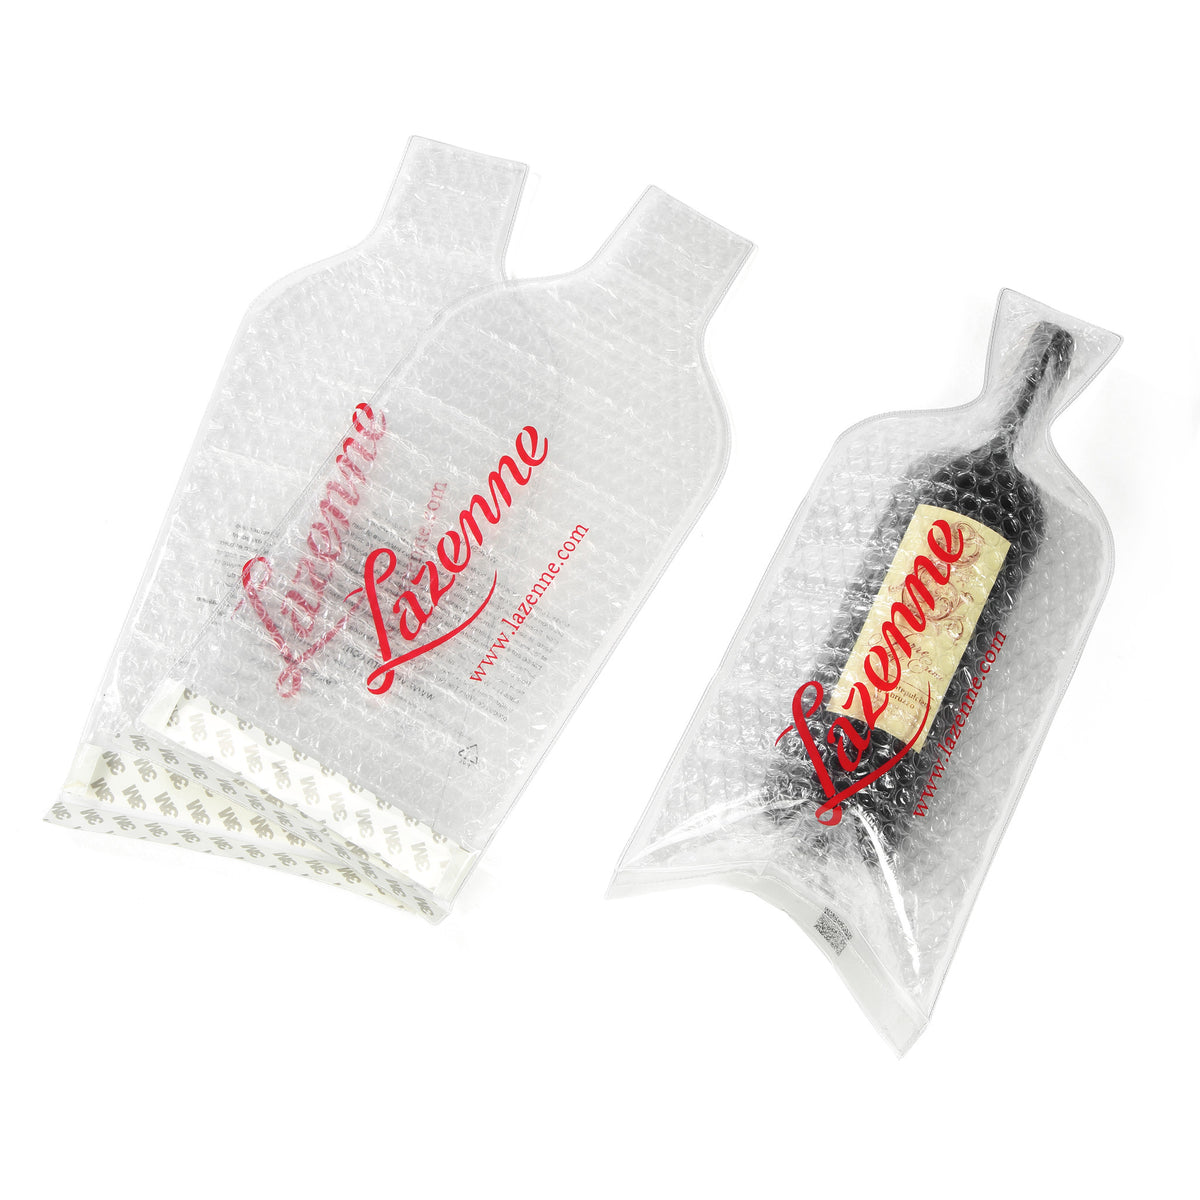 WINESKIN SINGLE BOTTLE PROTECTOR - Lazenne - 1